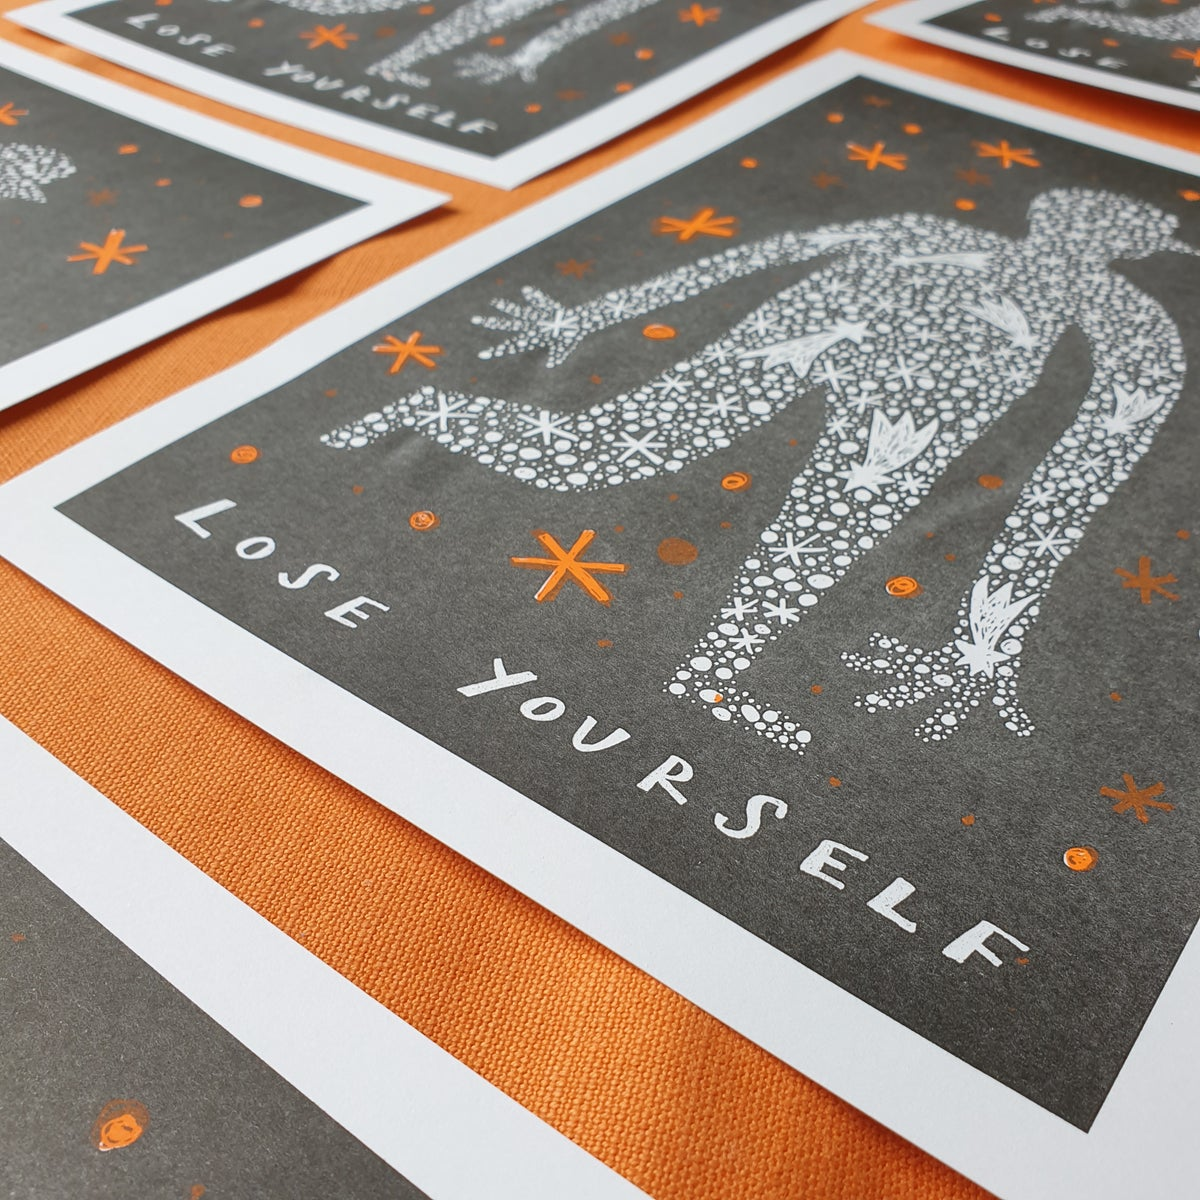 Image of Lose Yourself, Risograph print